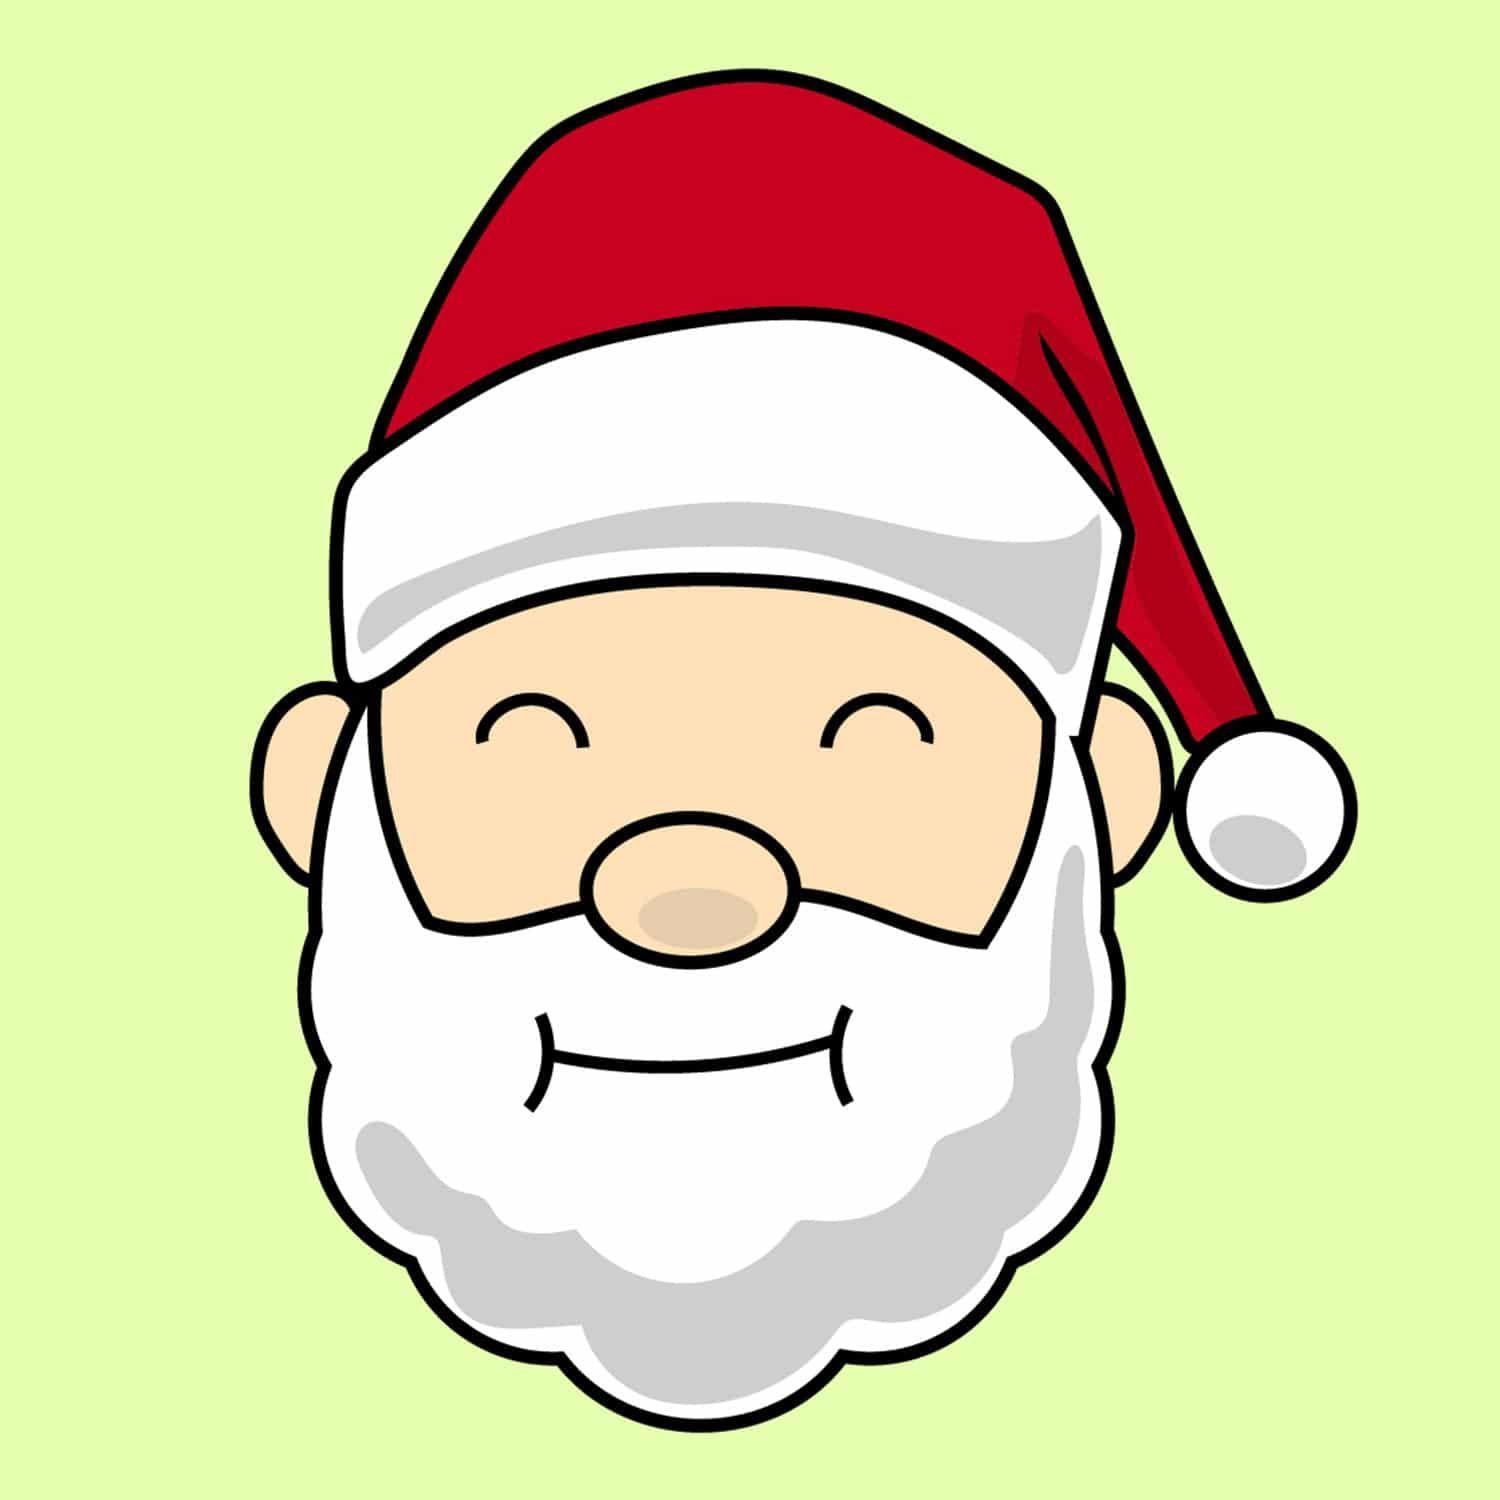 Free Cute Santa Face Clipart For Your Holiday Decorations Santa Face Christmas Tree Clipart Clip Art